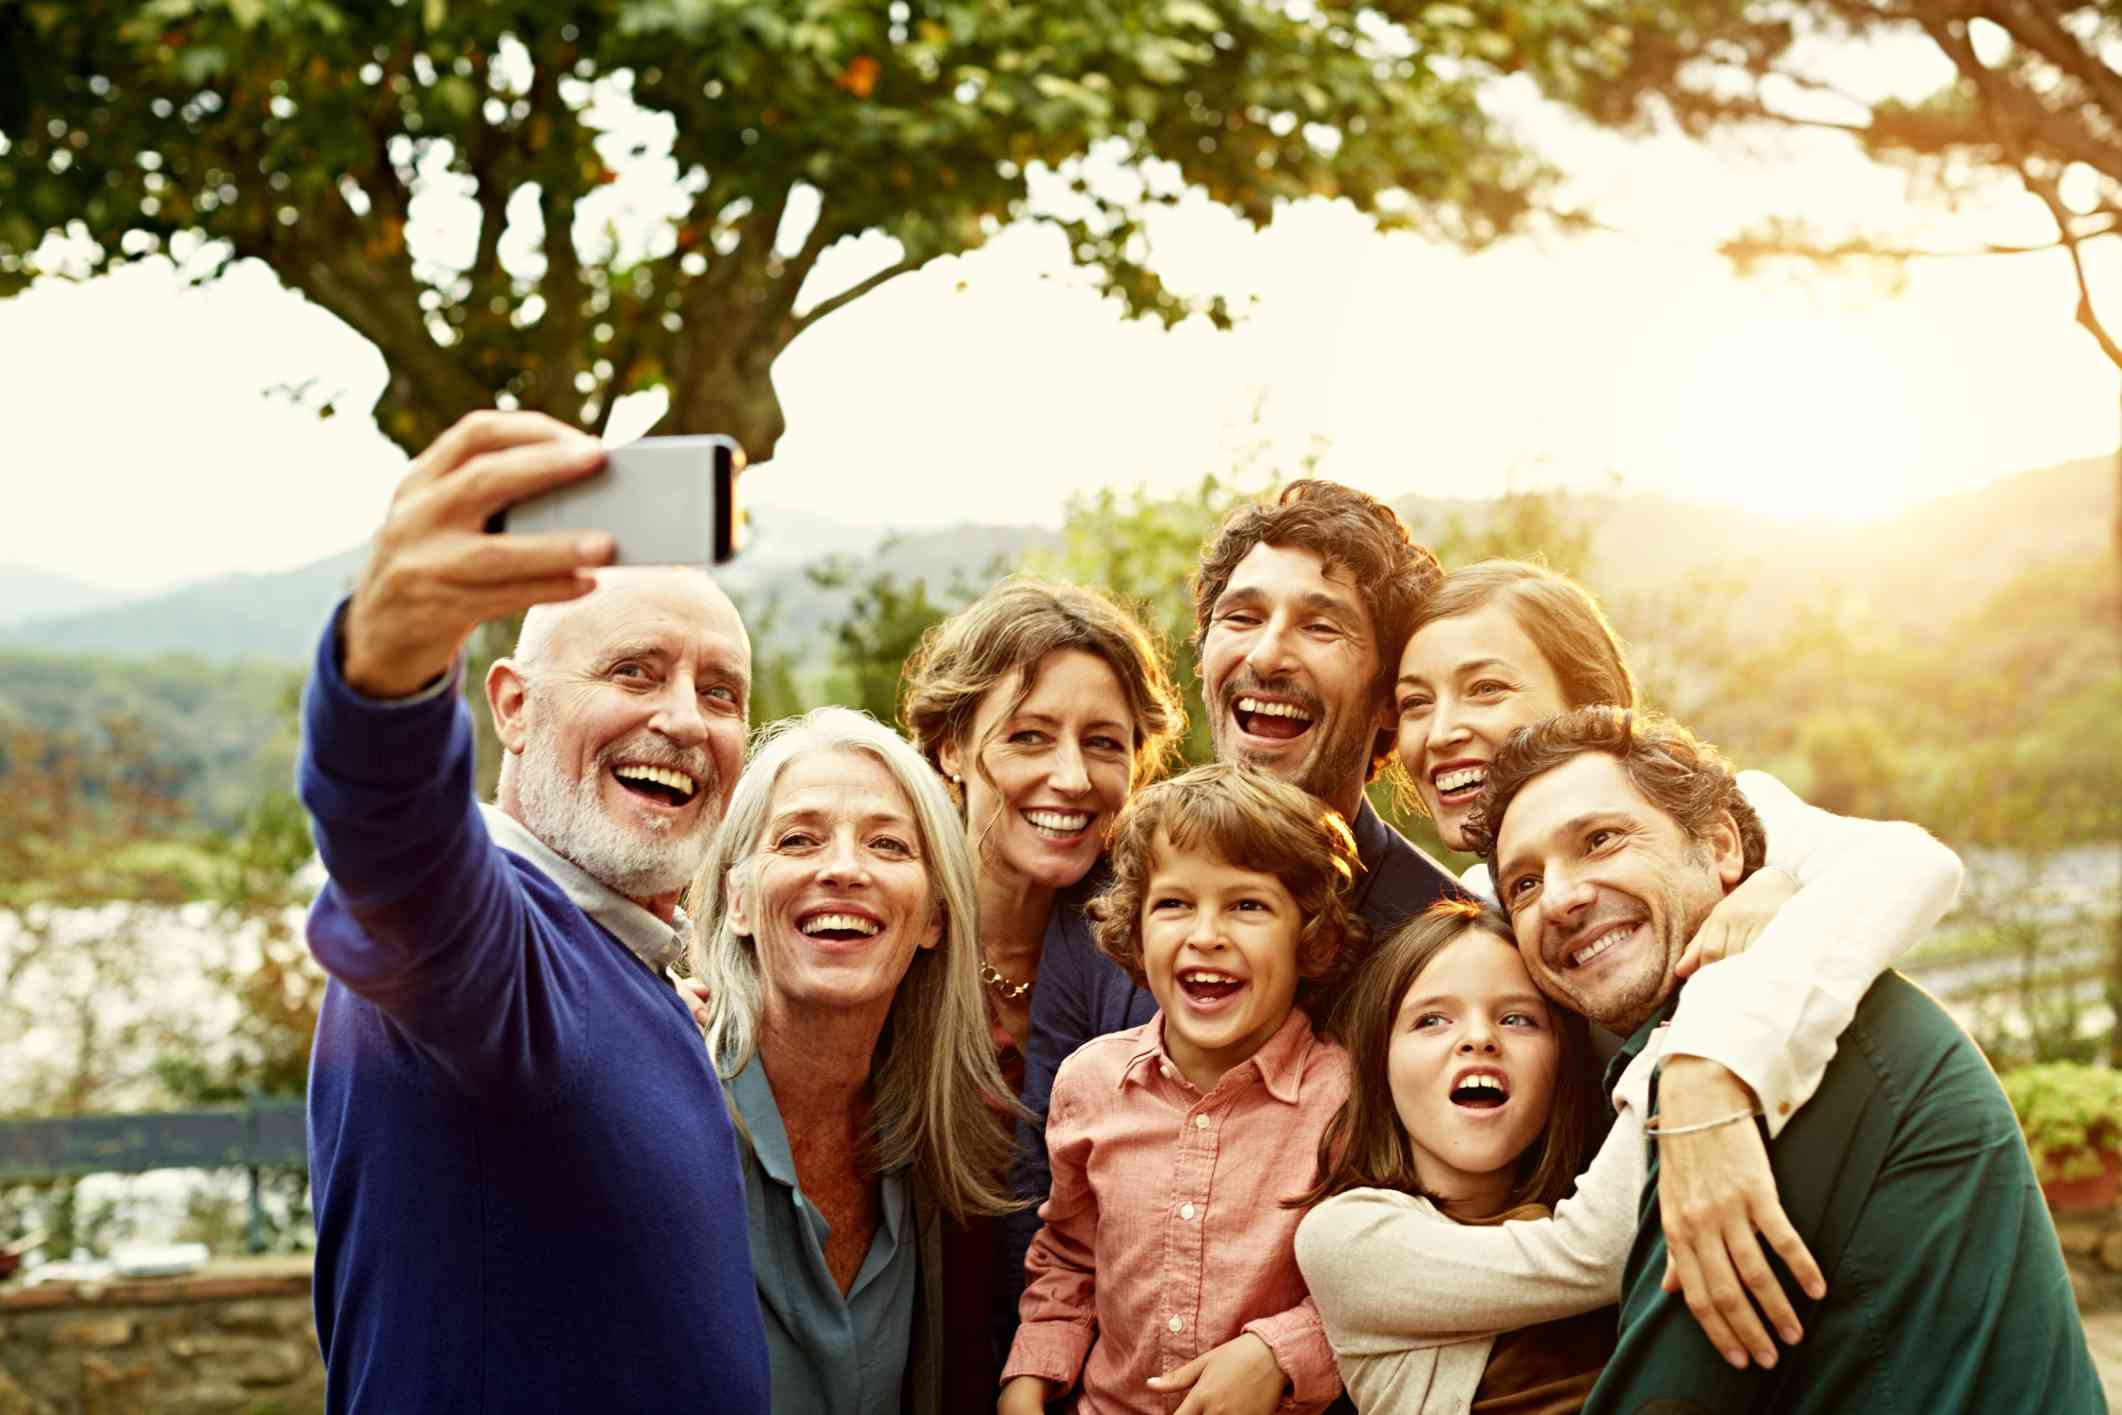 Family members taking a selfie together